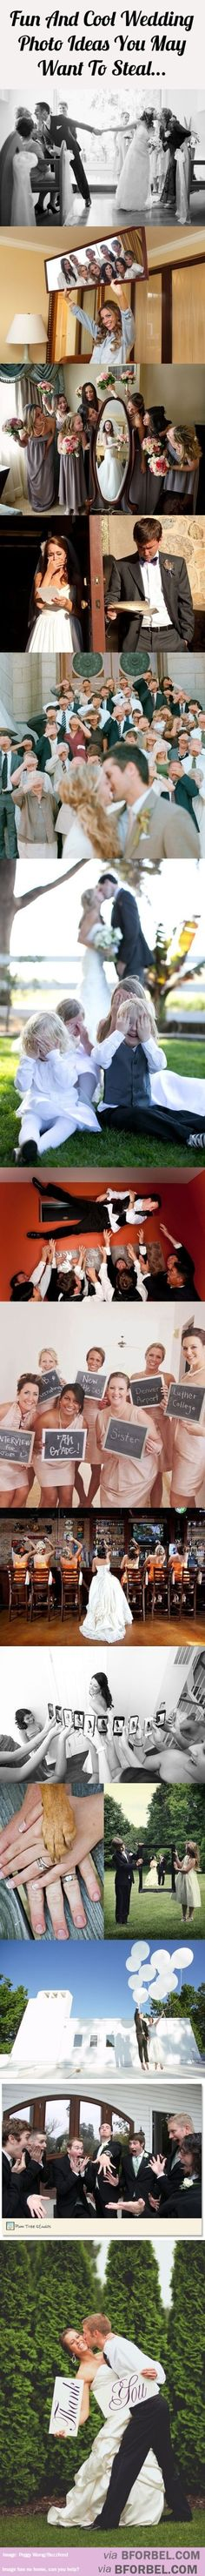 Bague de mariage : 15 Fun And Cool Wedding Photo Ideas You May Want To Steal… - Flashmode Belgium Wedding Goals, Wedding Pictures, Our Wedding, Wedding Planning, Dream Wedding, Couple Pictures, Trendy Wedding, Funny Pictures, Wedding Stuff